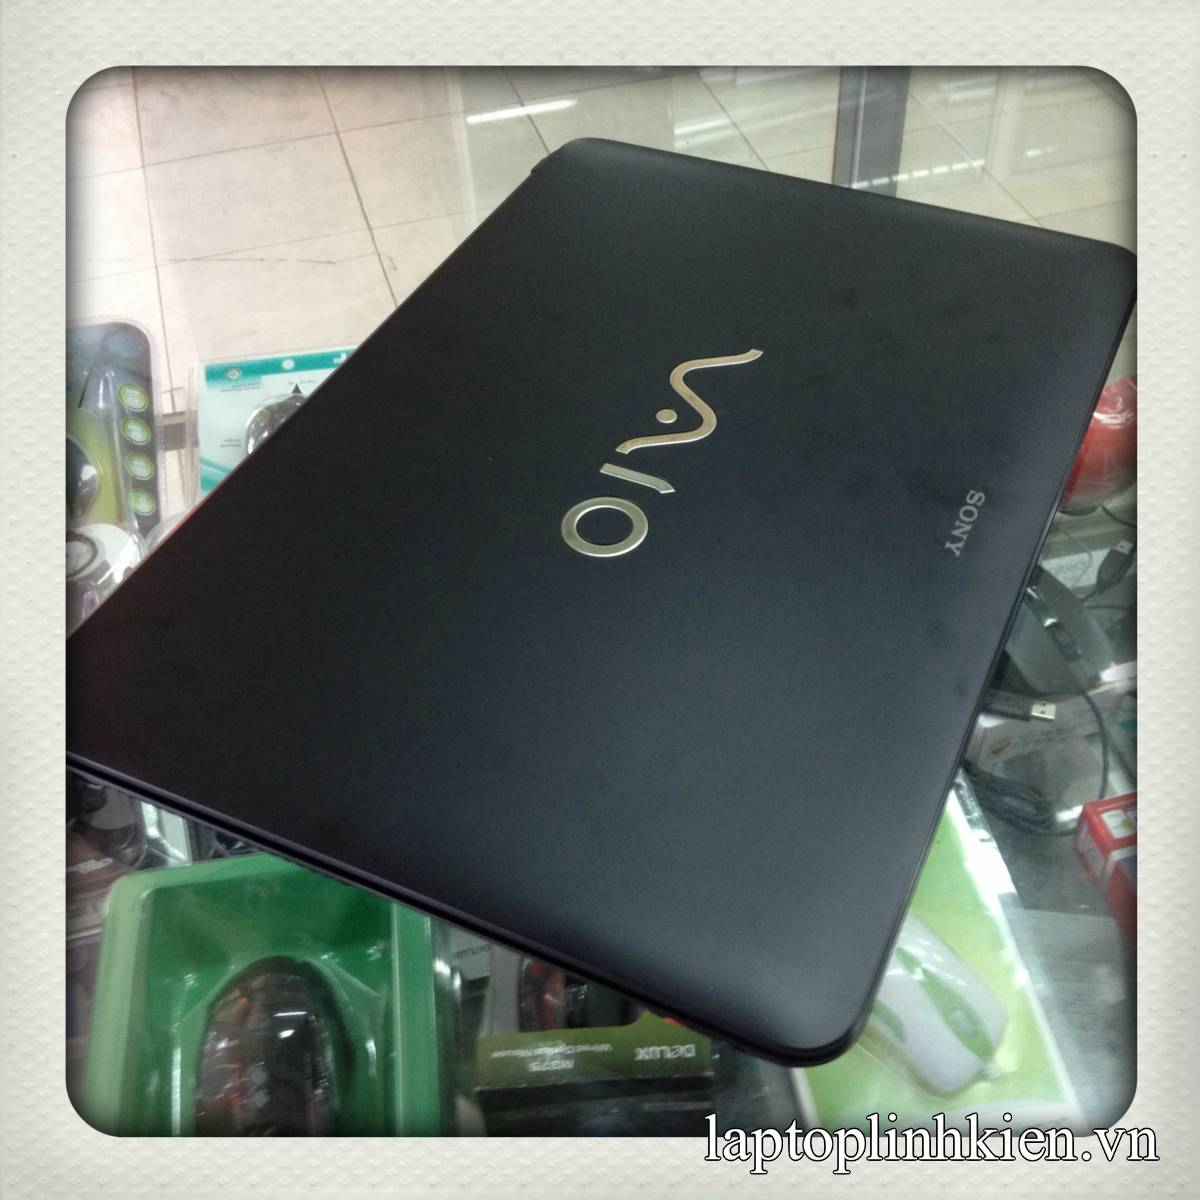 Laptop cũ Sony SVF1421QSGB Core i3-3217 Ram2GB HDD500GB